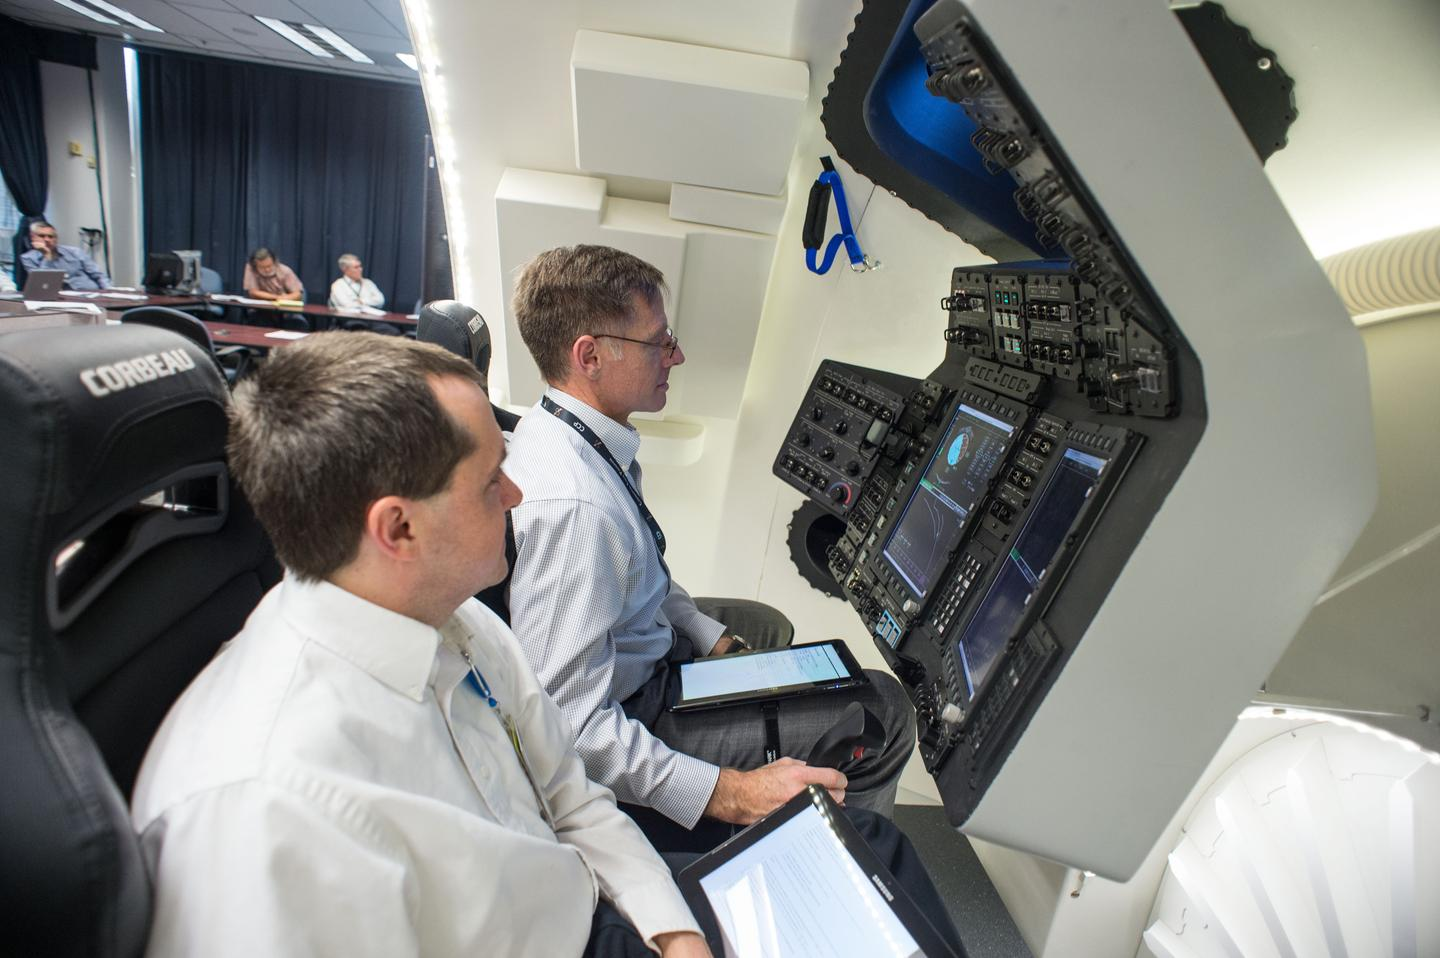 Chris Ferguson (center) at the simulator controls